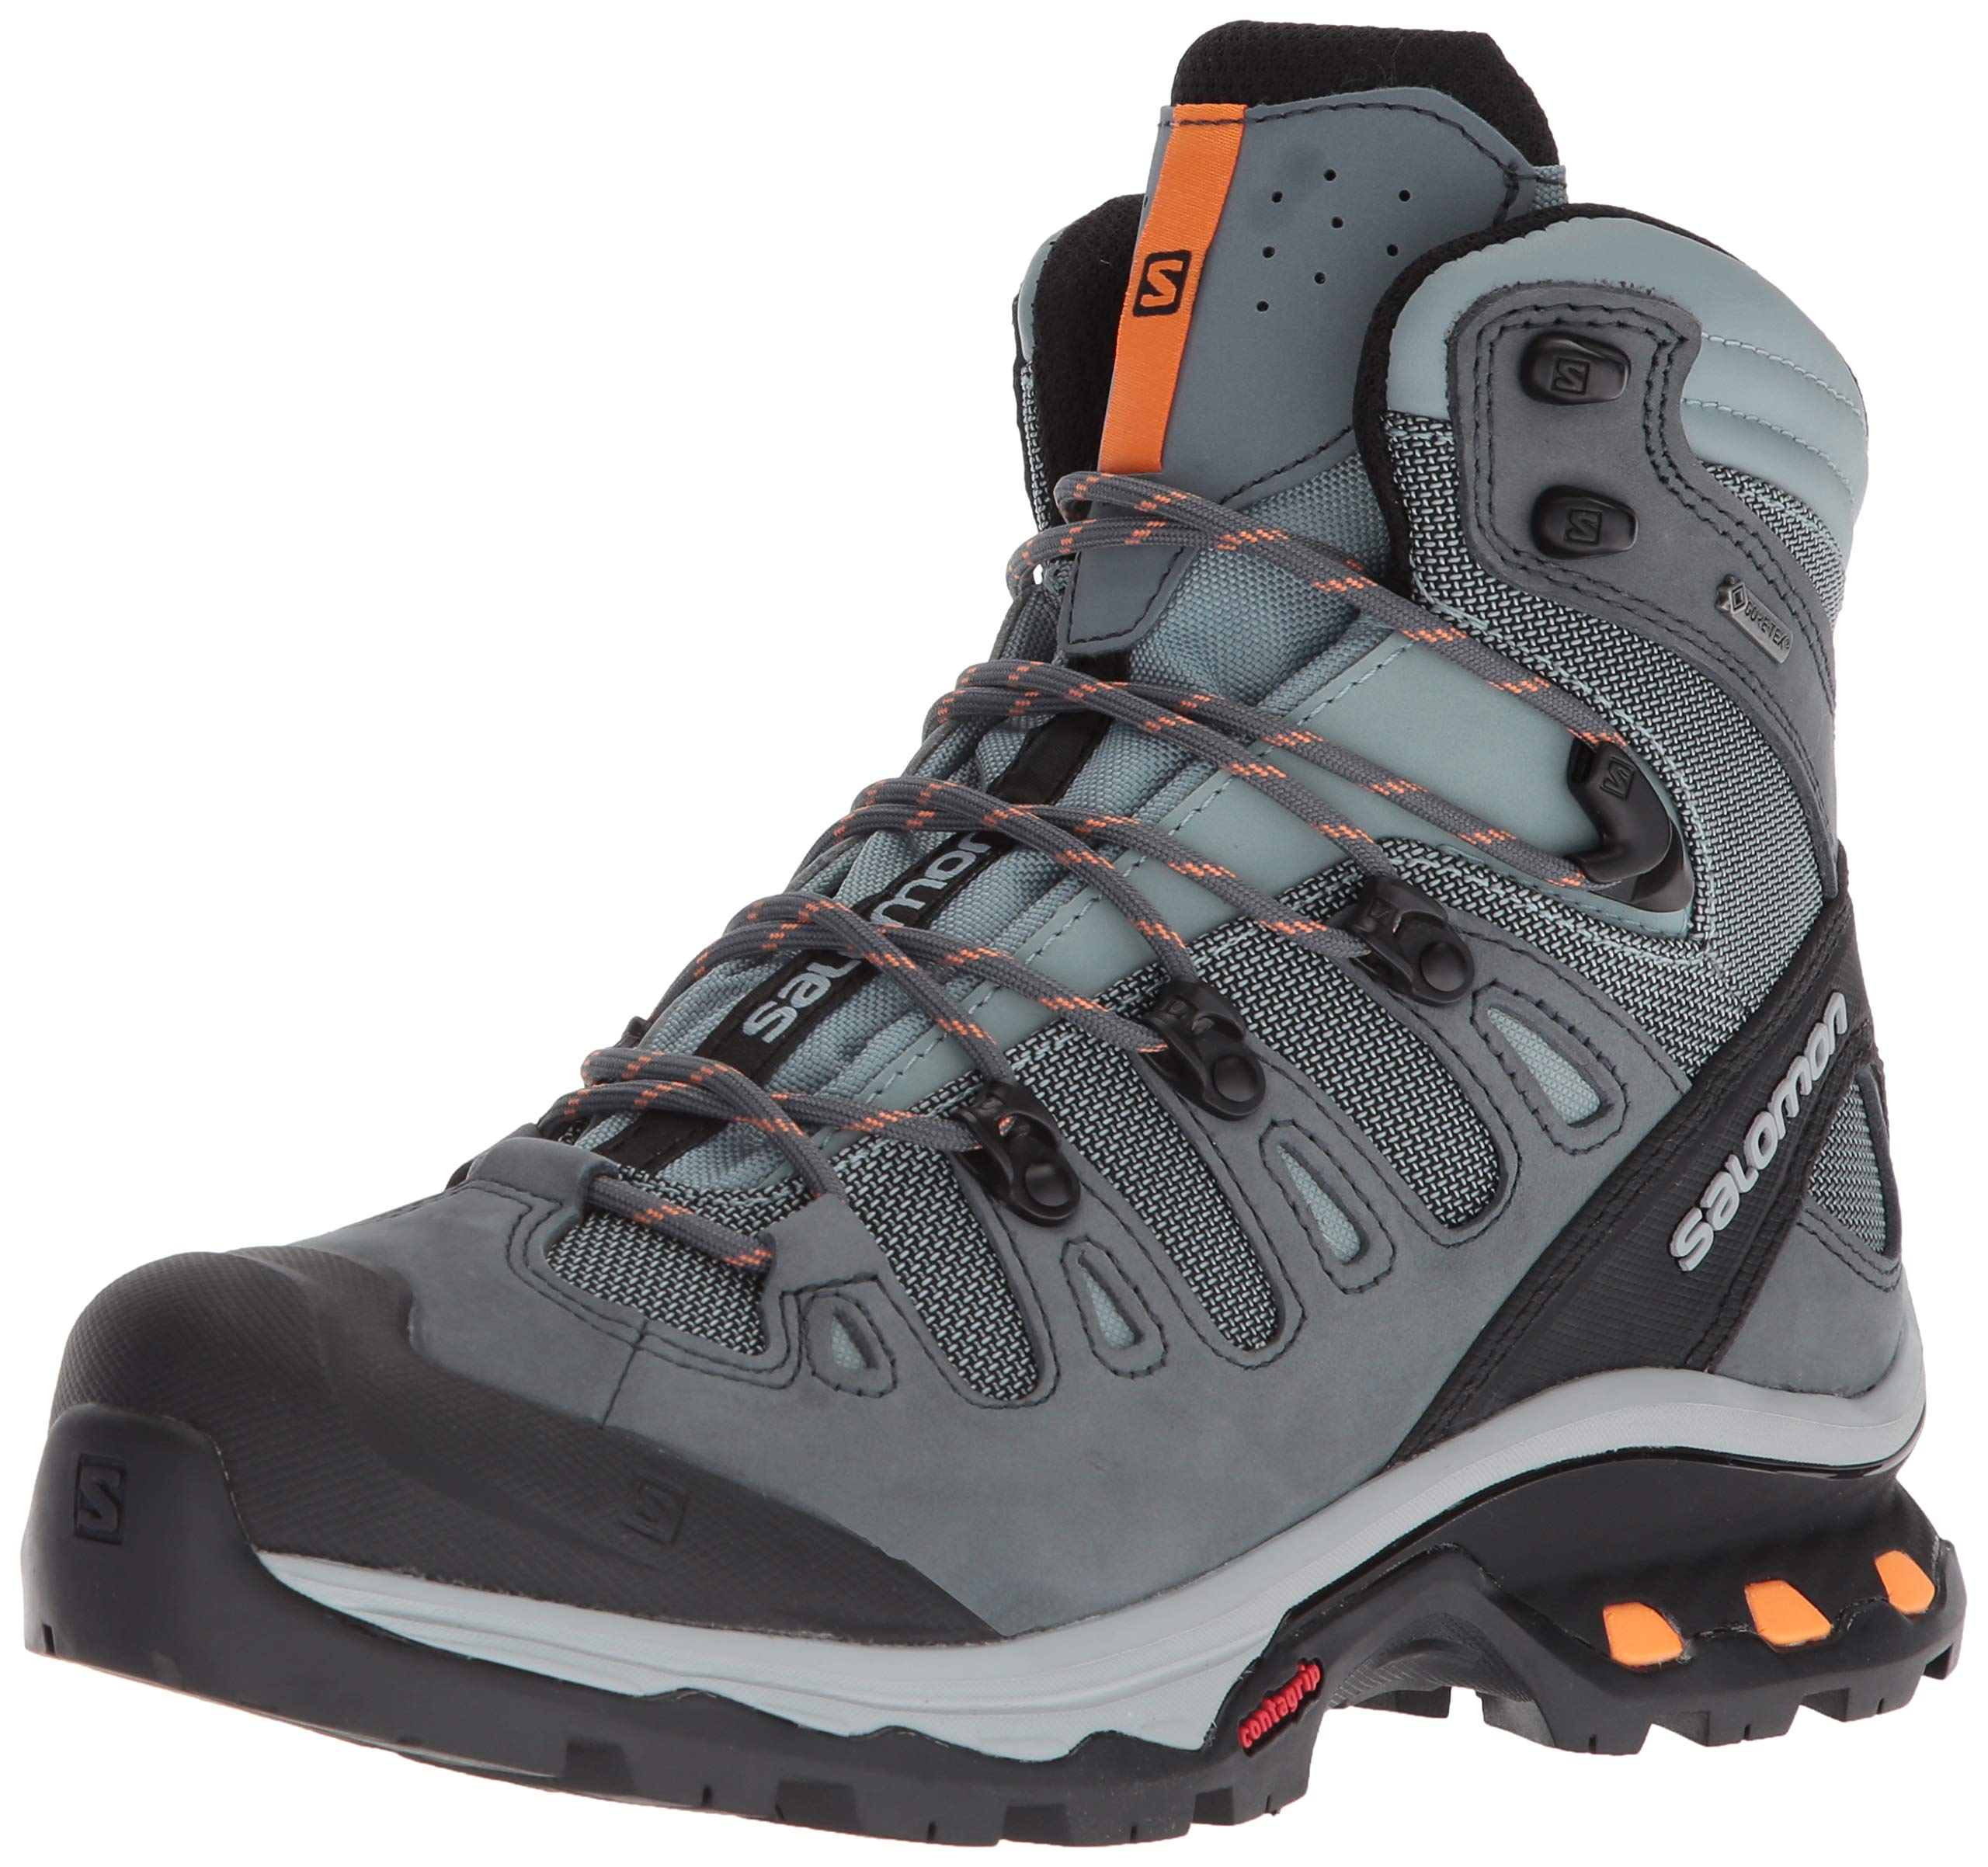 Salomon Women's Quest 4D 3 Gtx W Backpacking Boots, Lead/Stormy Weather, 7 B US